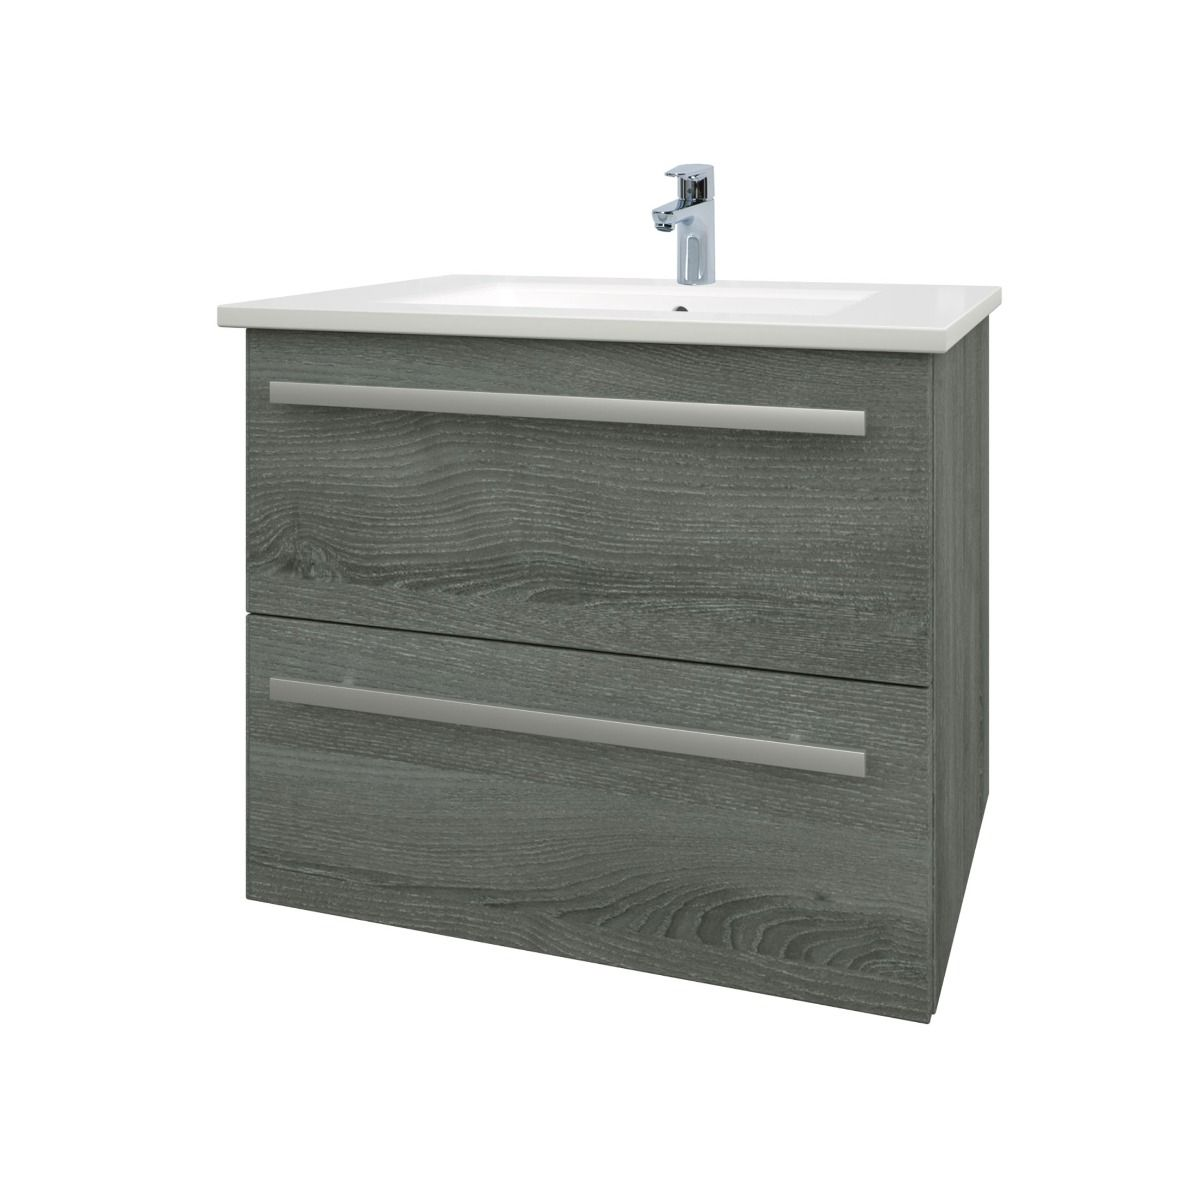 Kartell Purity Grey Ash 2 Drawer Wall Mounted Vanity Unit 600mm